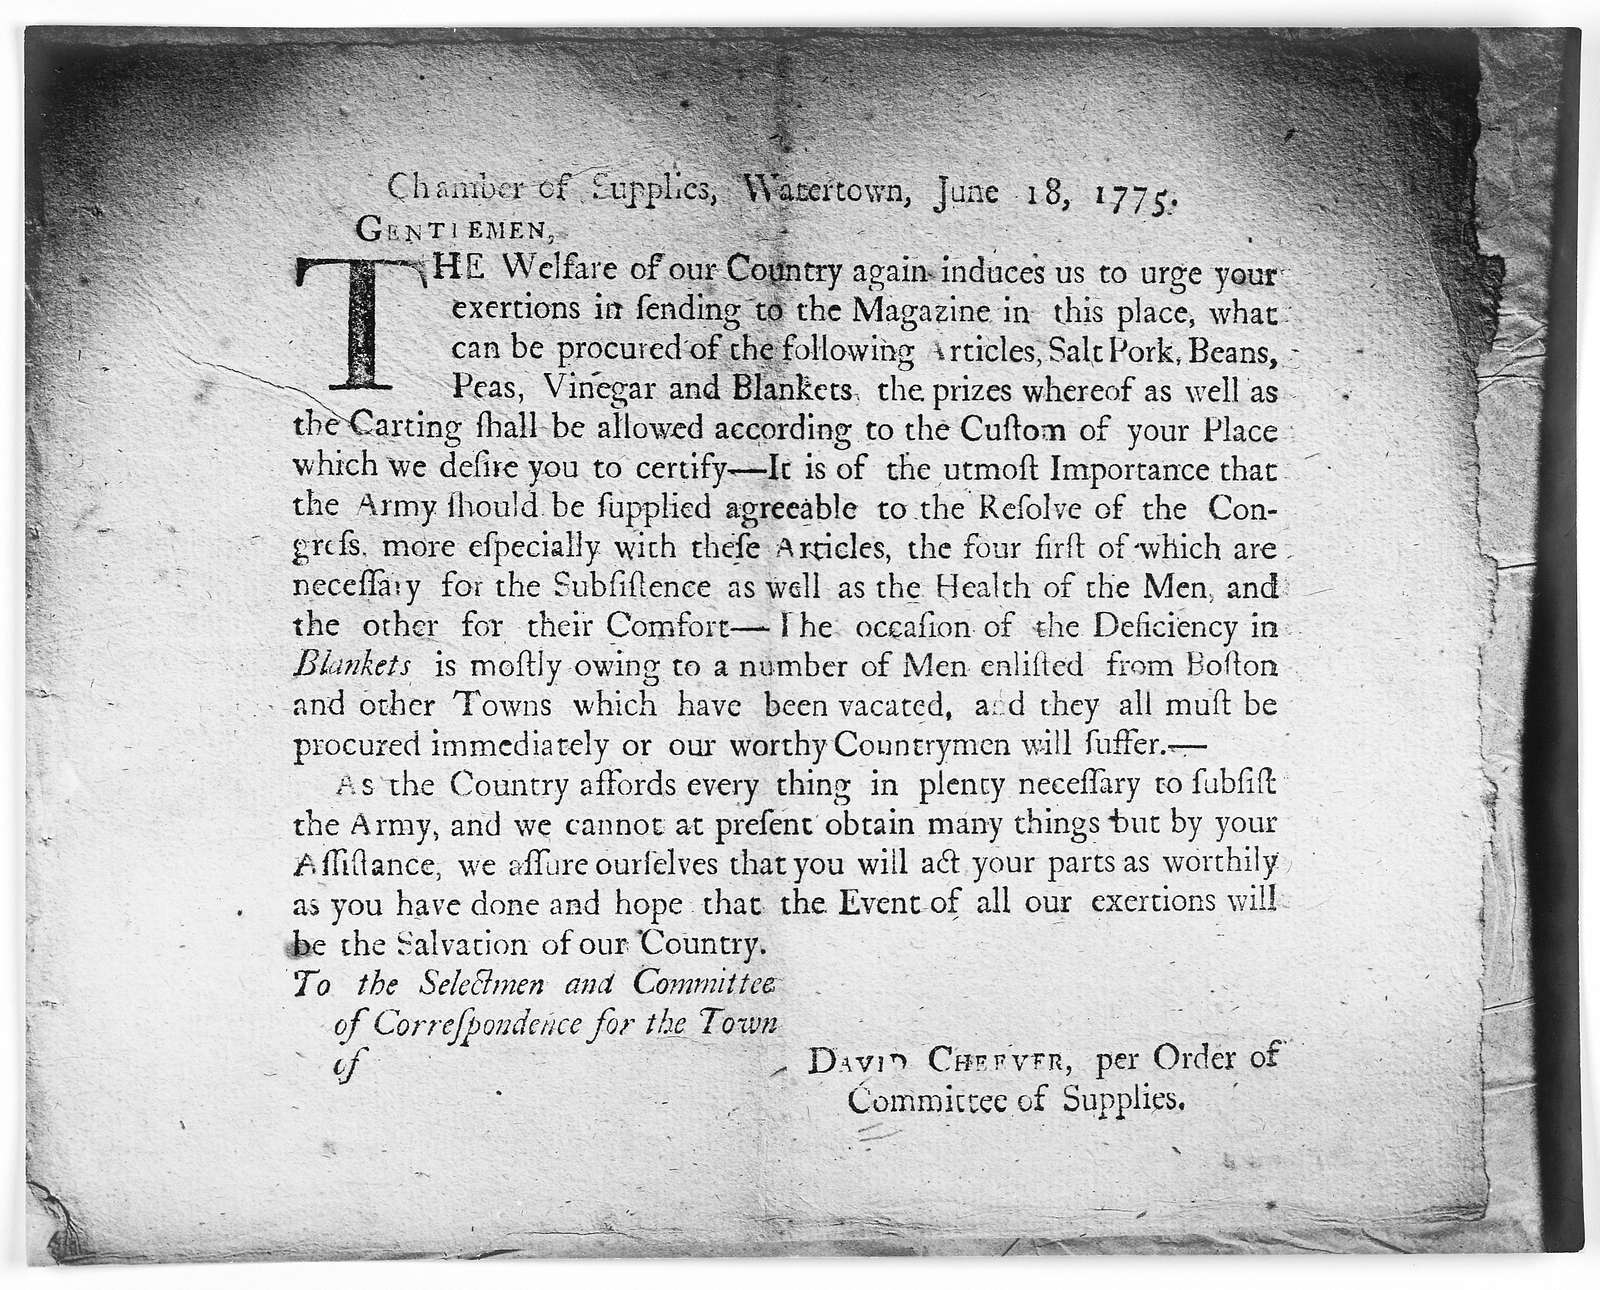 Chamber of supplies, Watertown, June 18, 1775. Gentlemen, The welfare of our country again induces us to urge your exertions in sending to the magazine in this place, what can be procured of the following articles, salt pork, beans, peas, vinega